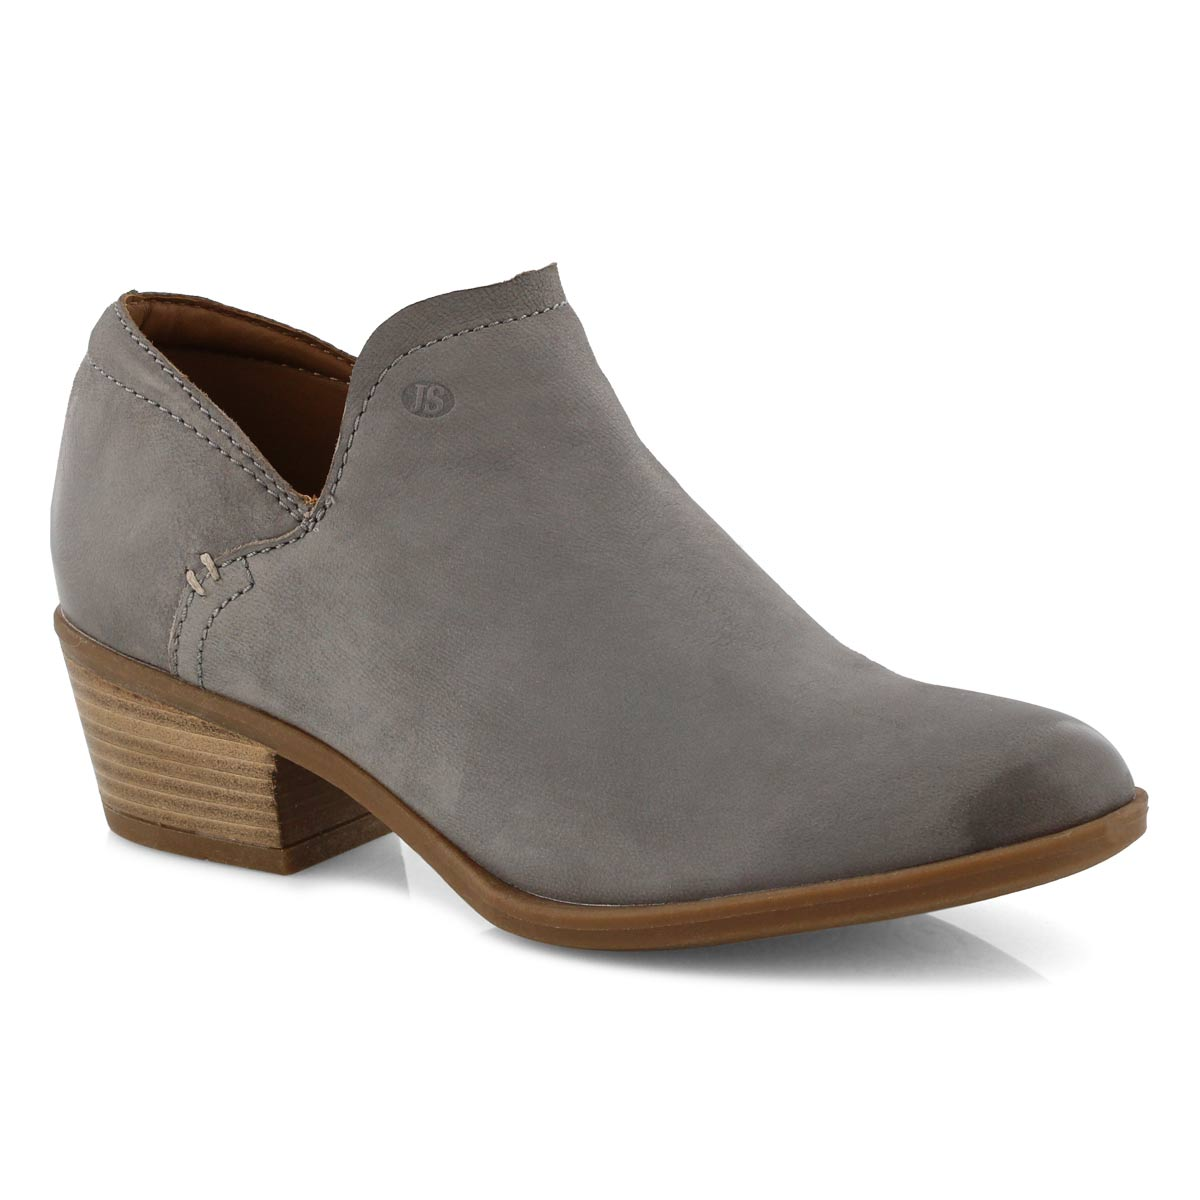 Lds Daphne 29 grau slip on dress boot